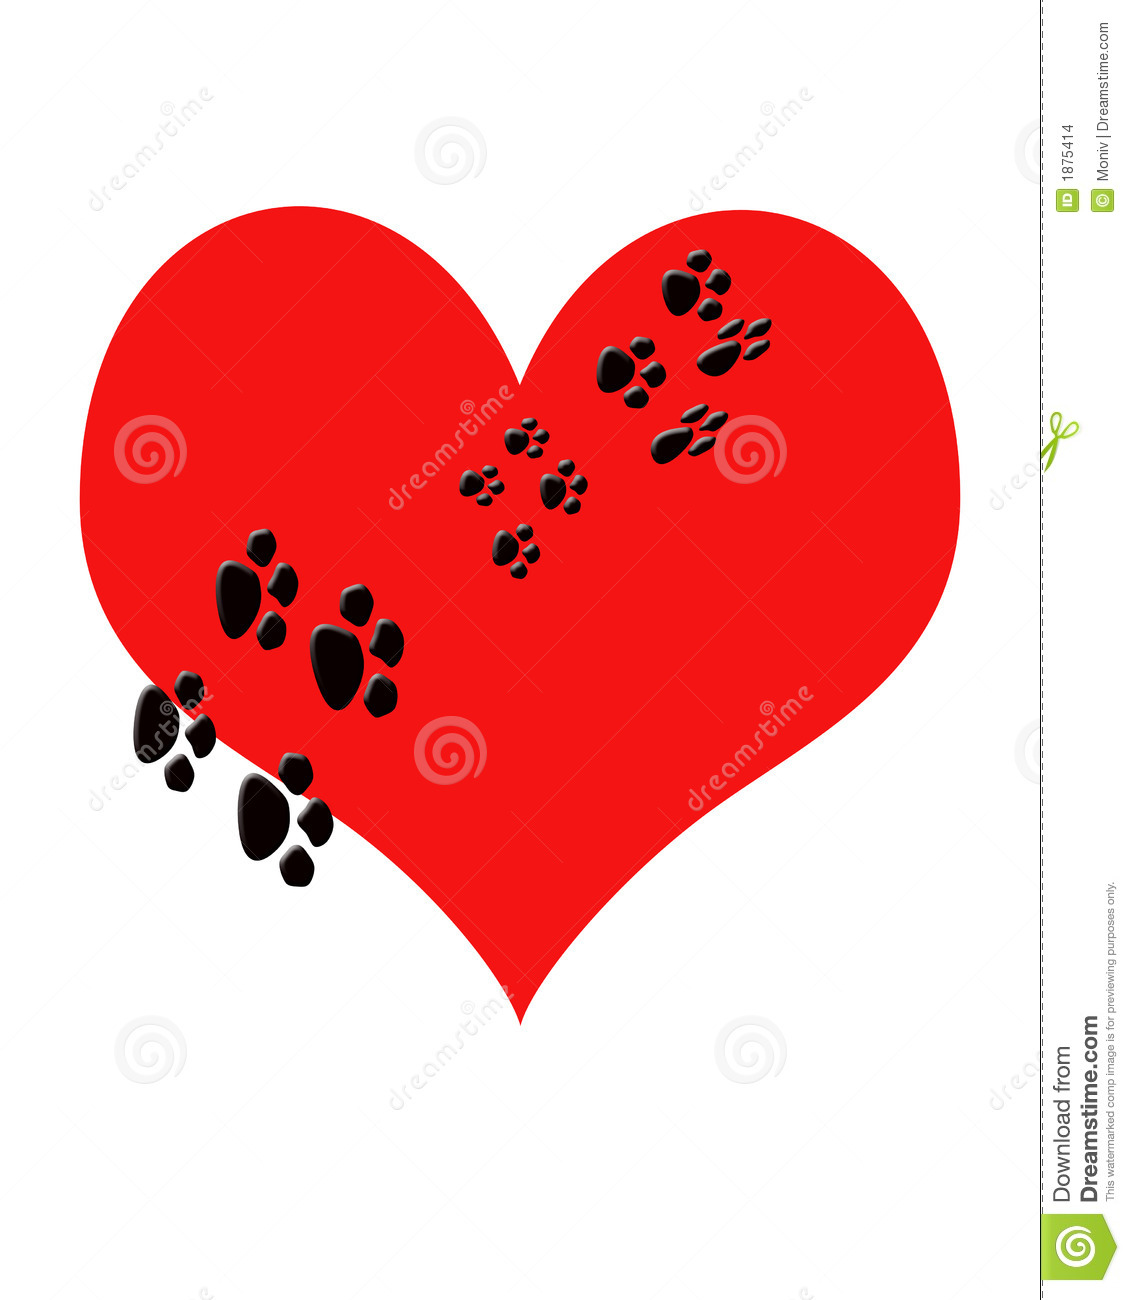 Red heart with puppy Paw prints walking thru it.Metaphor Puppy Love or ...